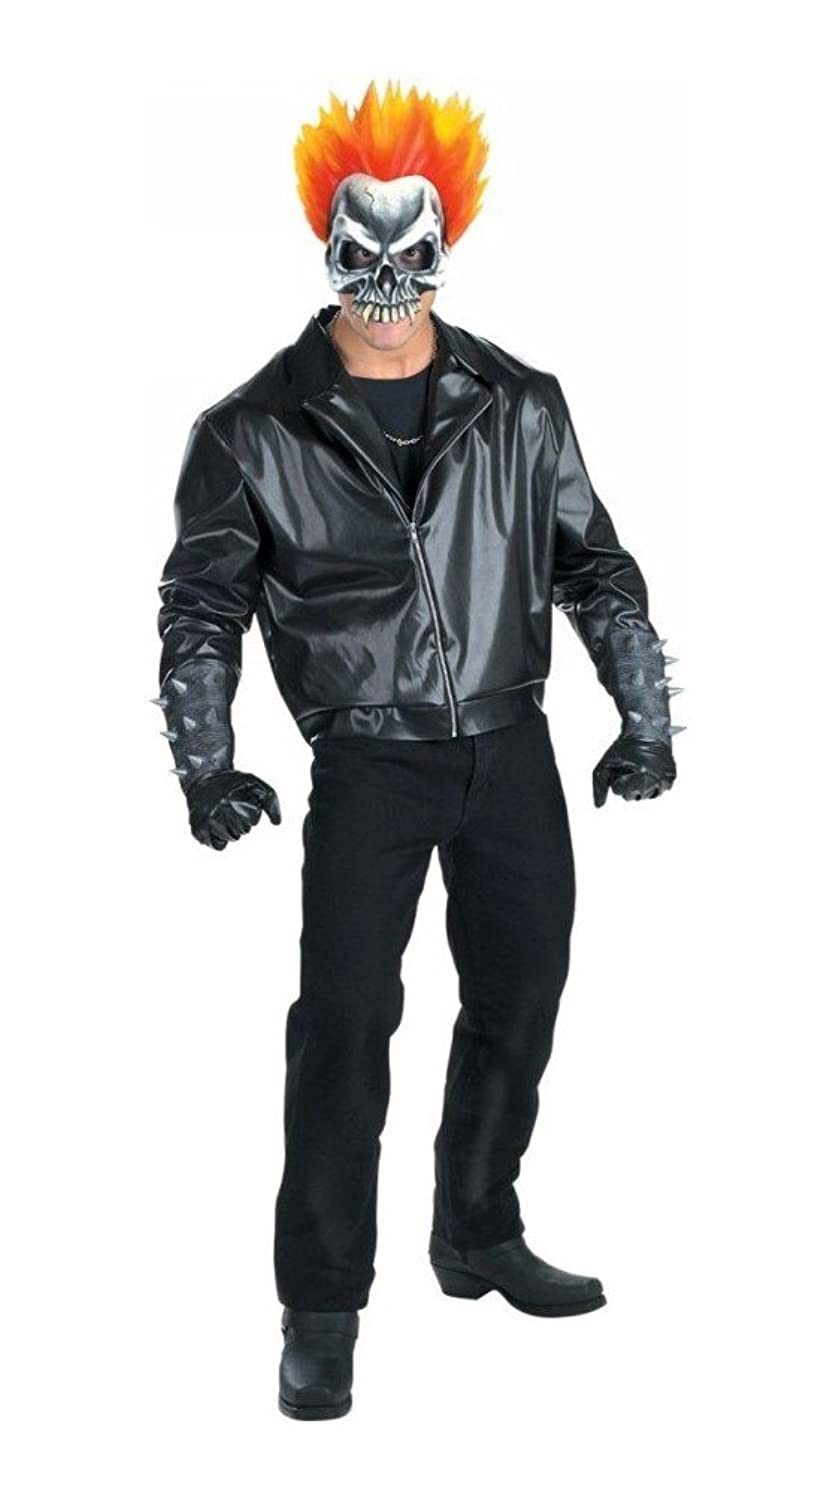 Amazon.com: Ghost Rider Teen Costume Costume - Medium - Chest Size ...